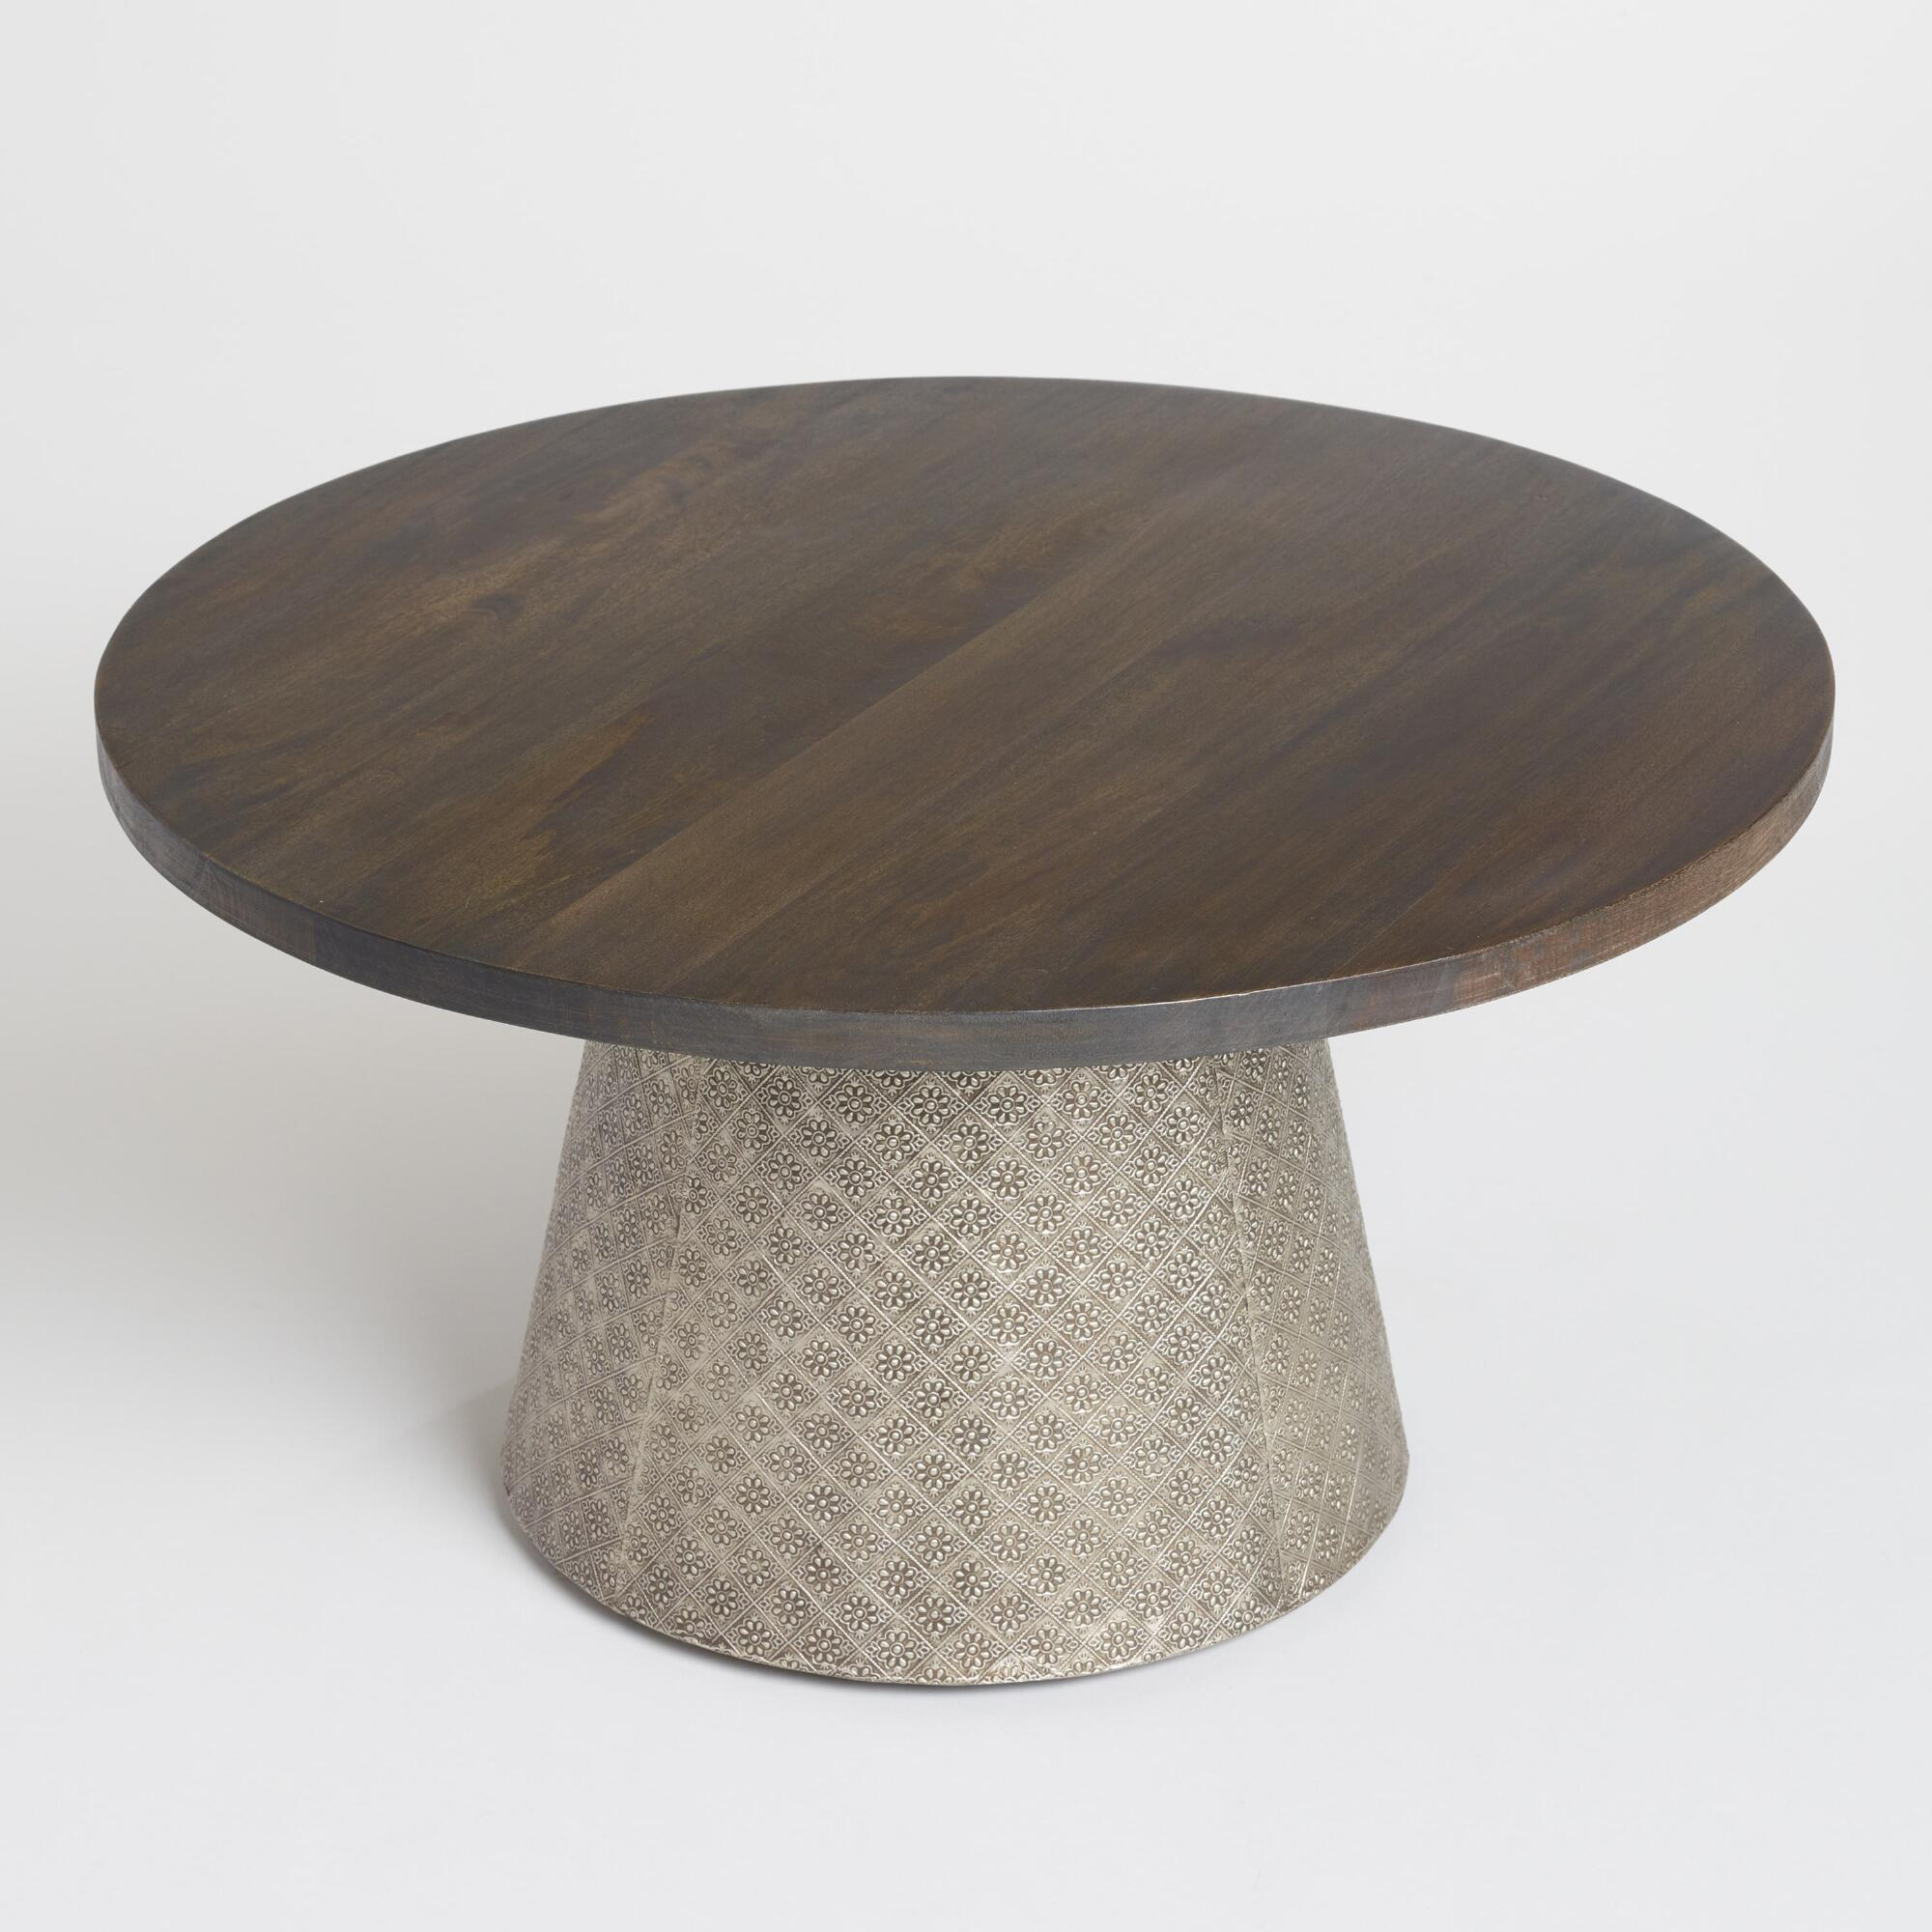 coffee tables end accent world market iipsrv fcgi round oak table wood and embossed metal kiran half moon next living room furniture tablecloth patio with umbrella hole side